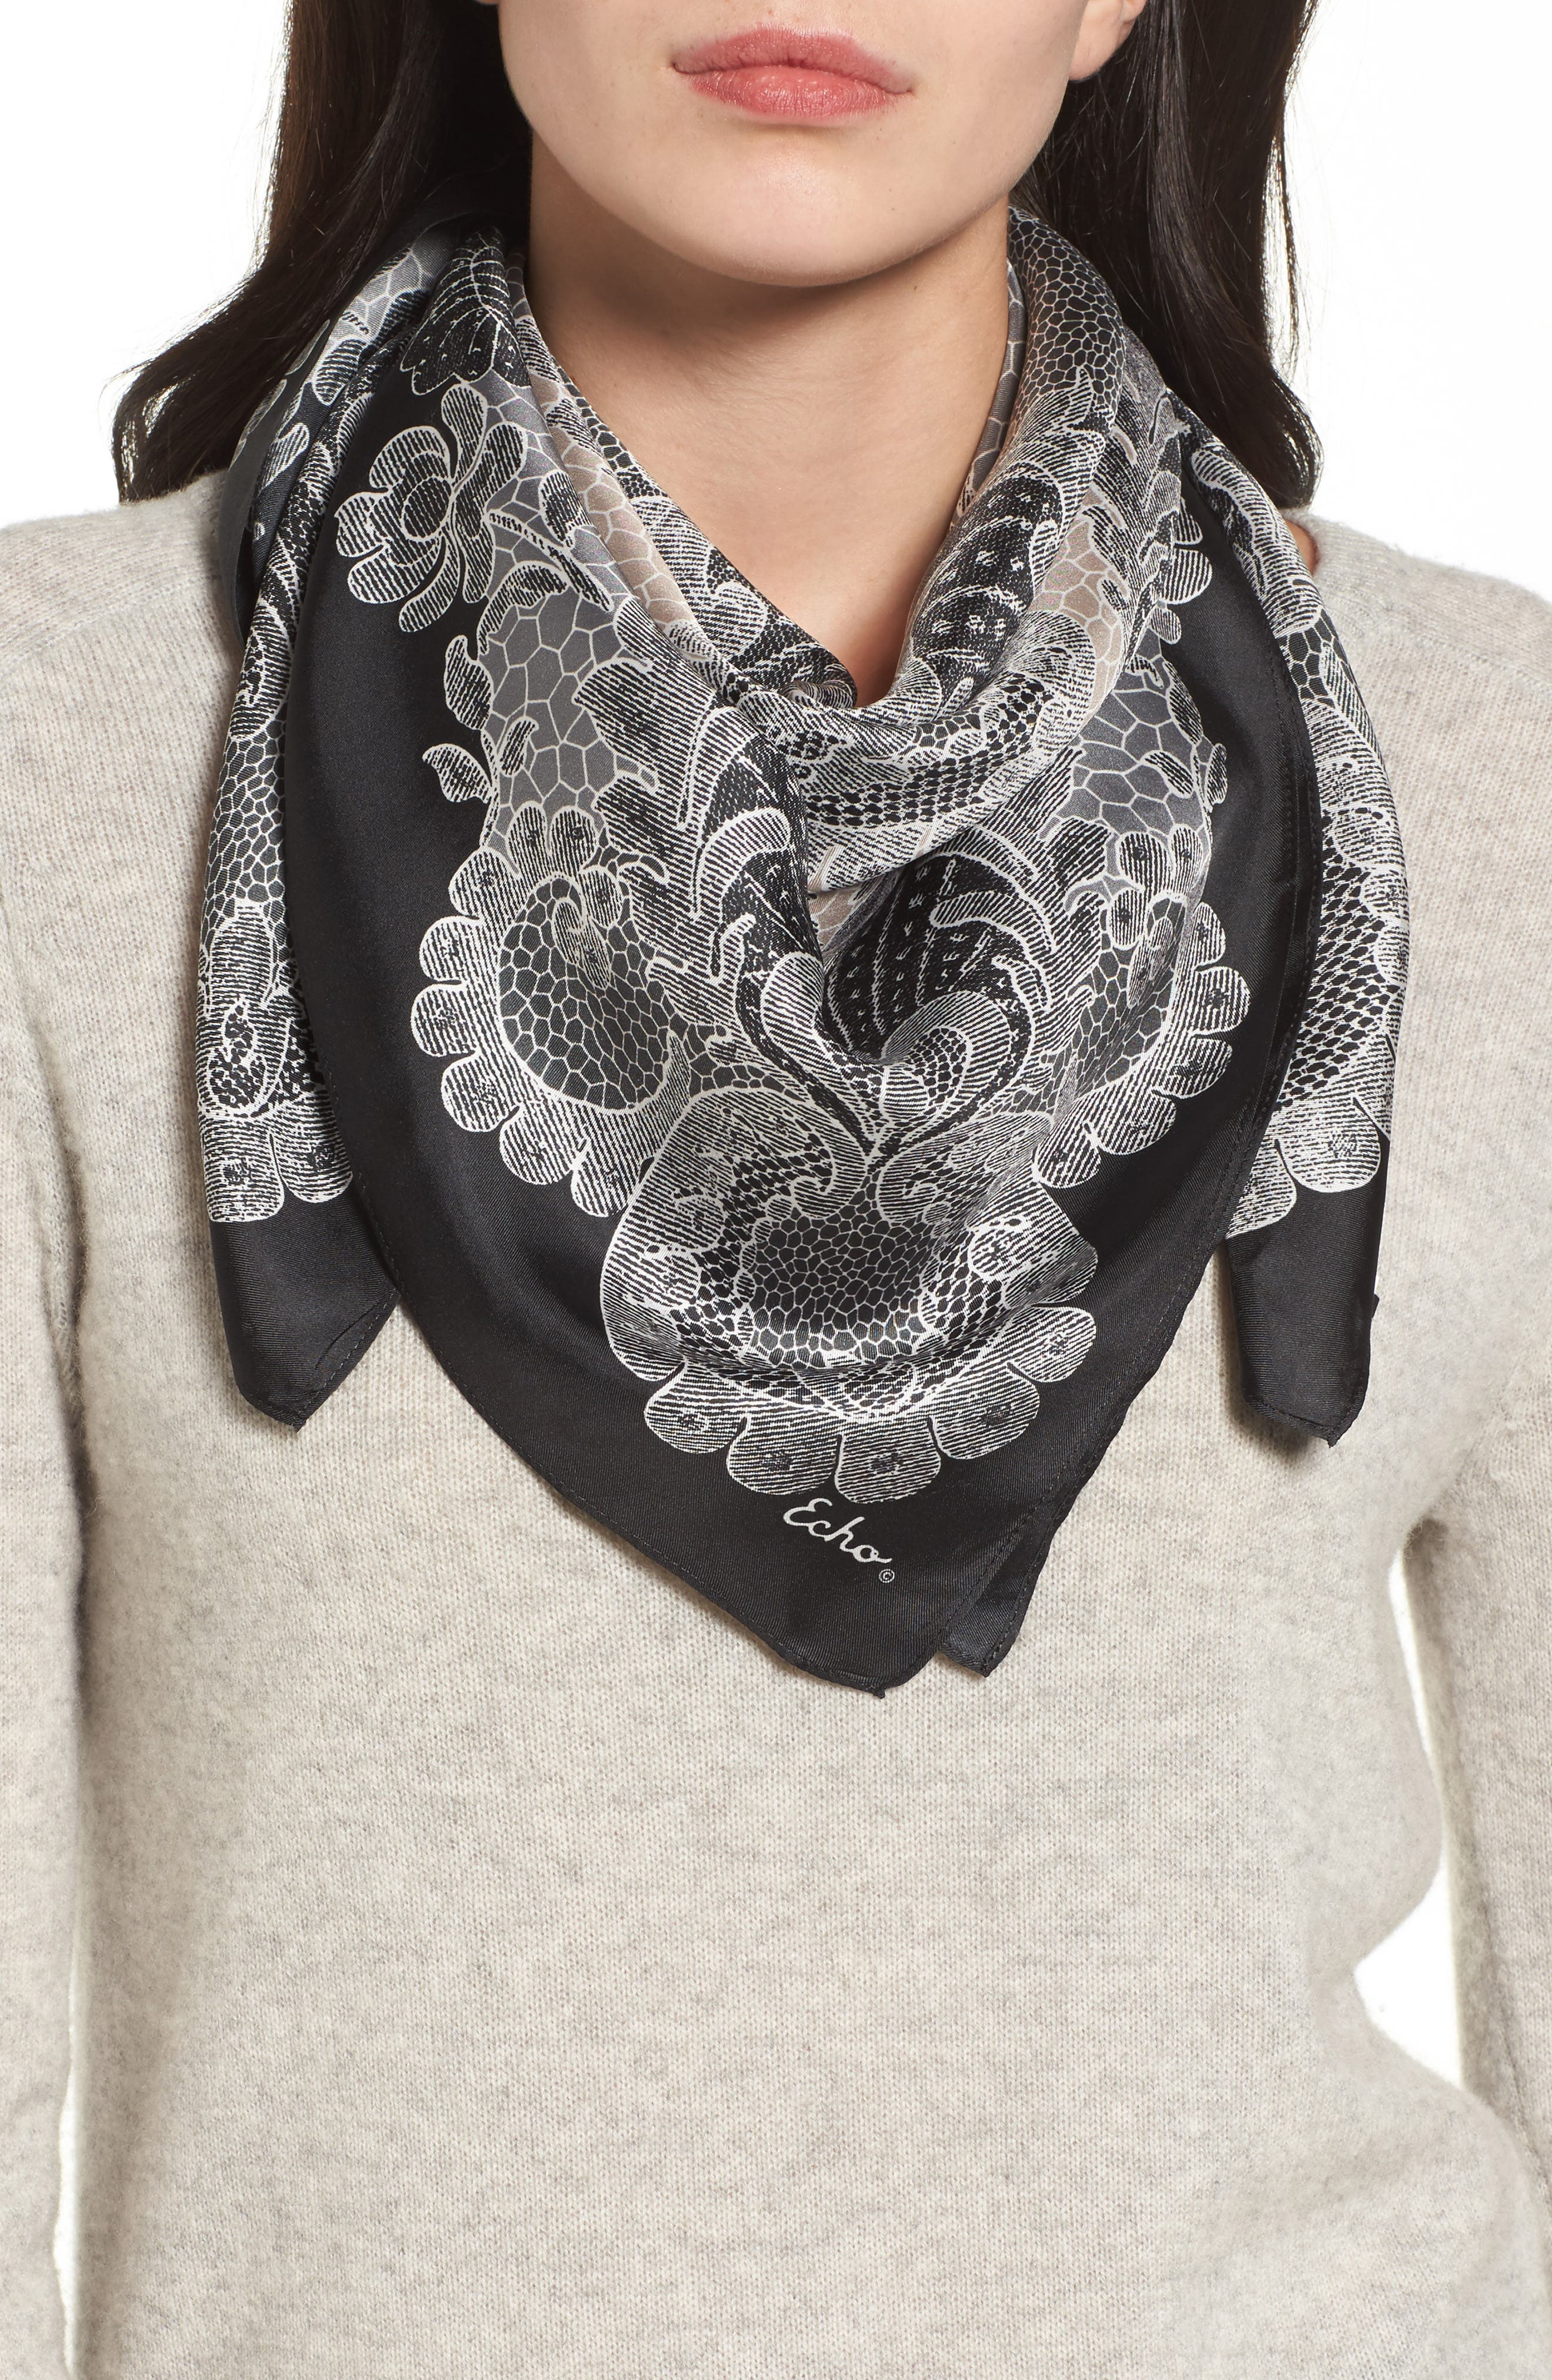 Camden Lace Square Silk Scarf,                             Main thumbnail 1, color,                             001